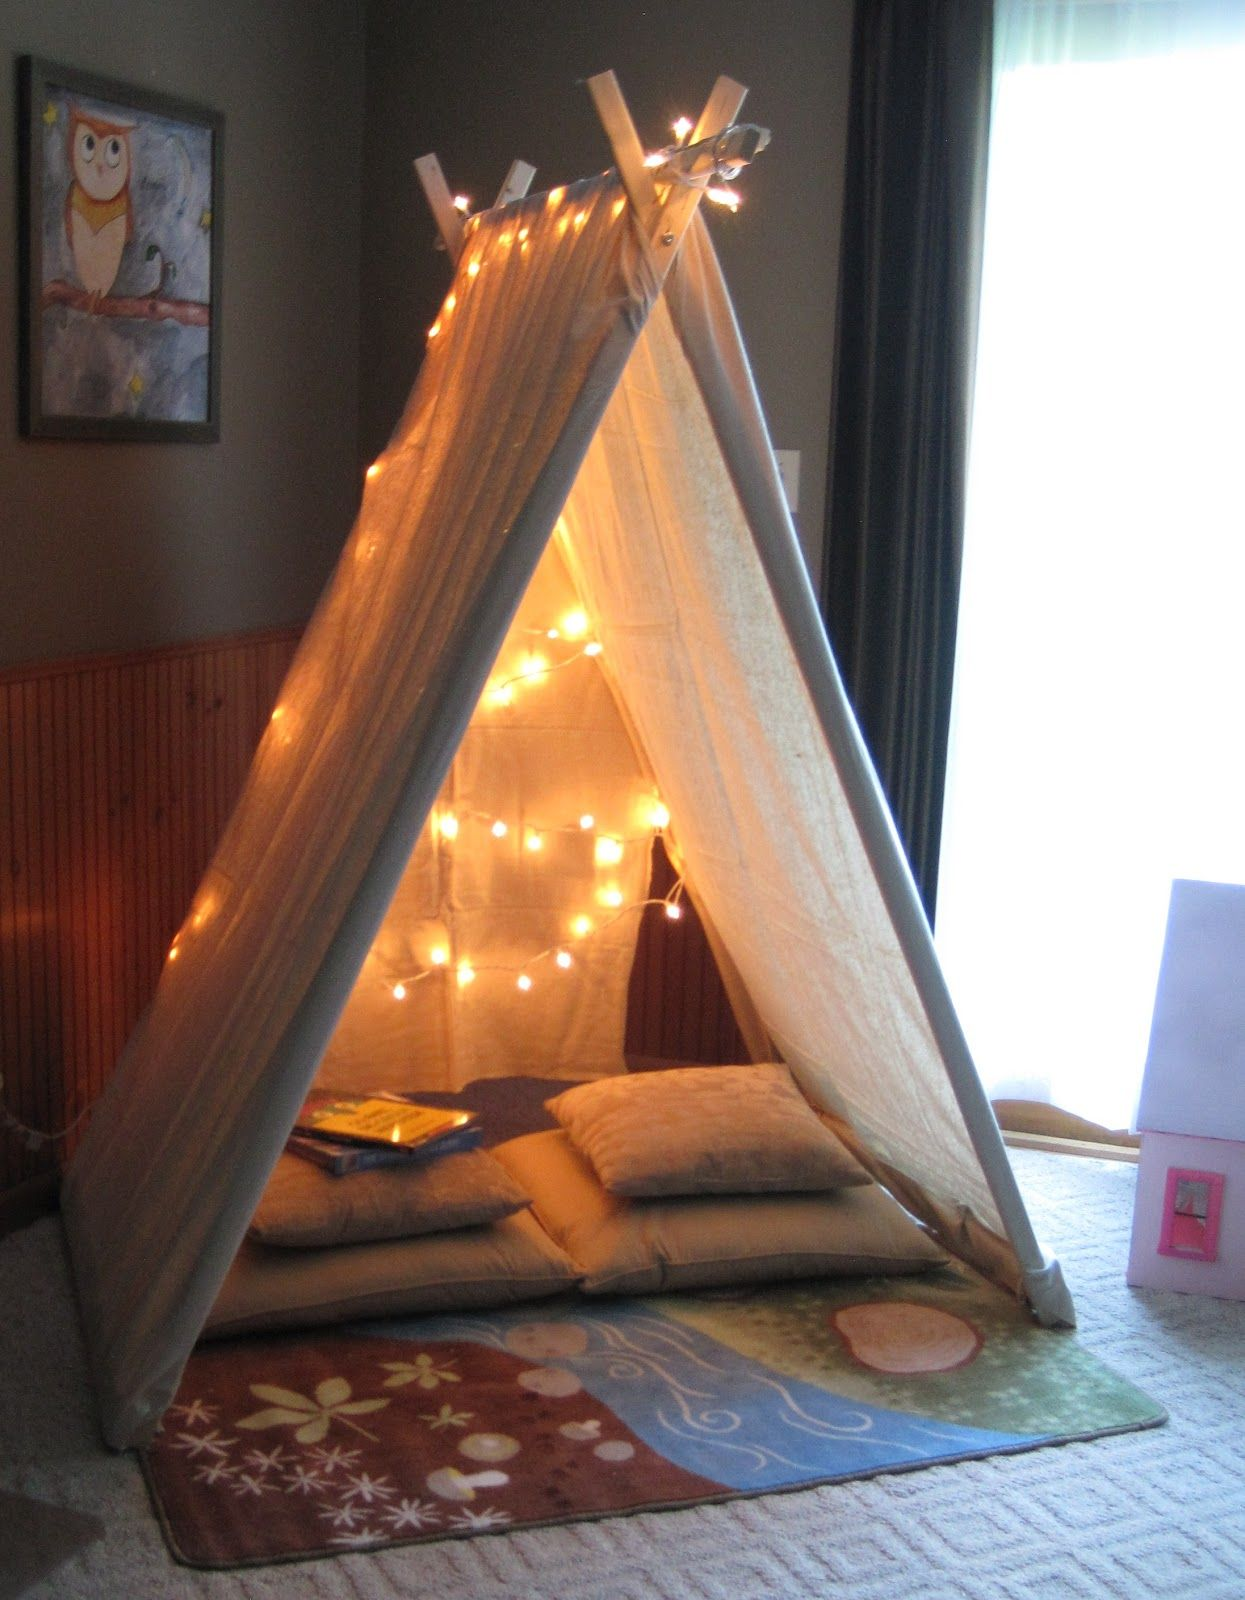 10 creative reading nooks for kids | Tents, Canvases and Reading tent